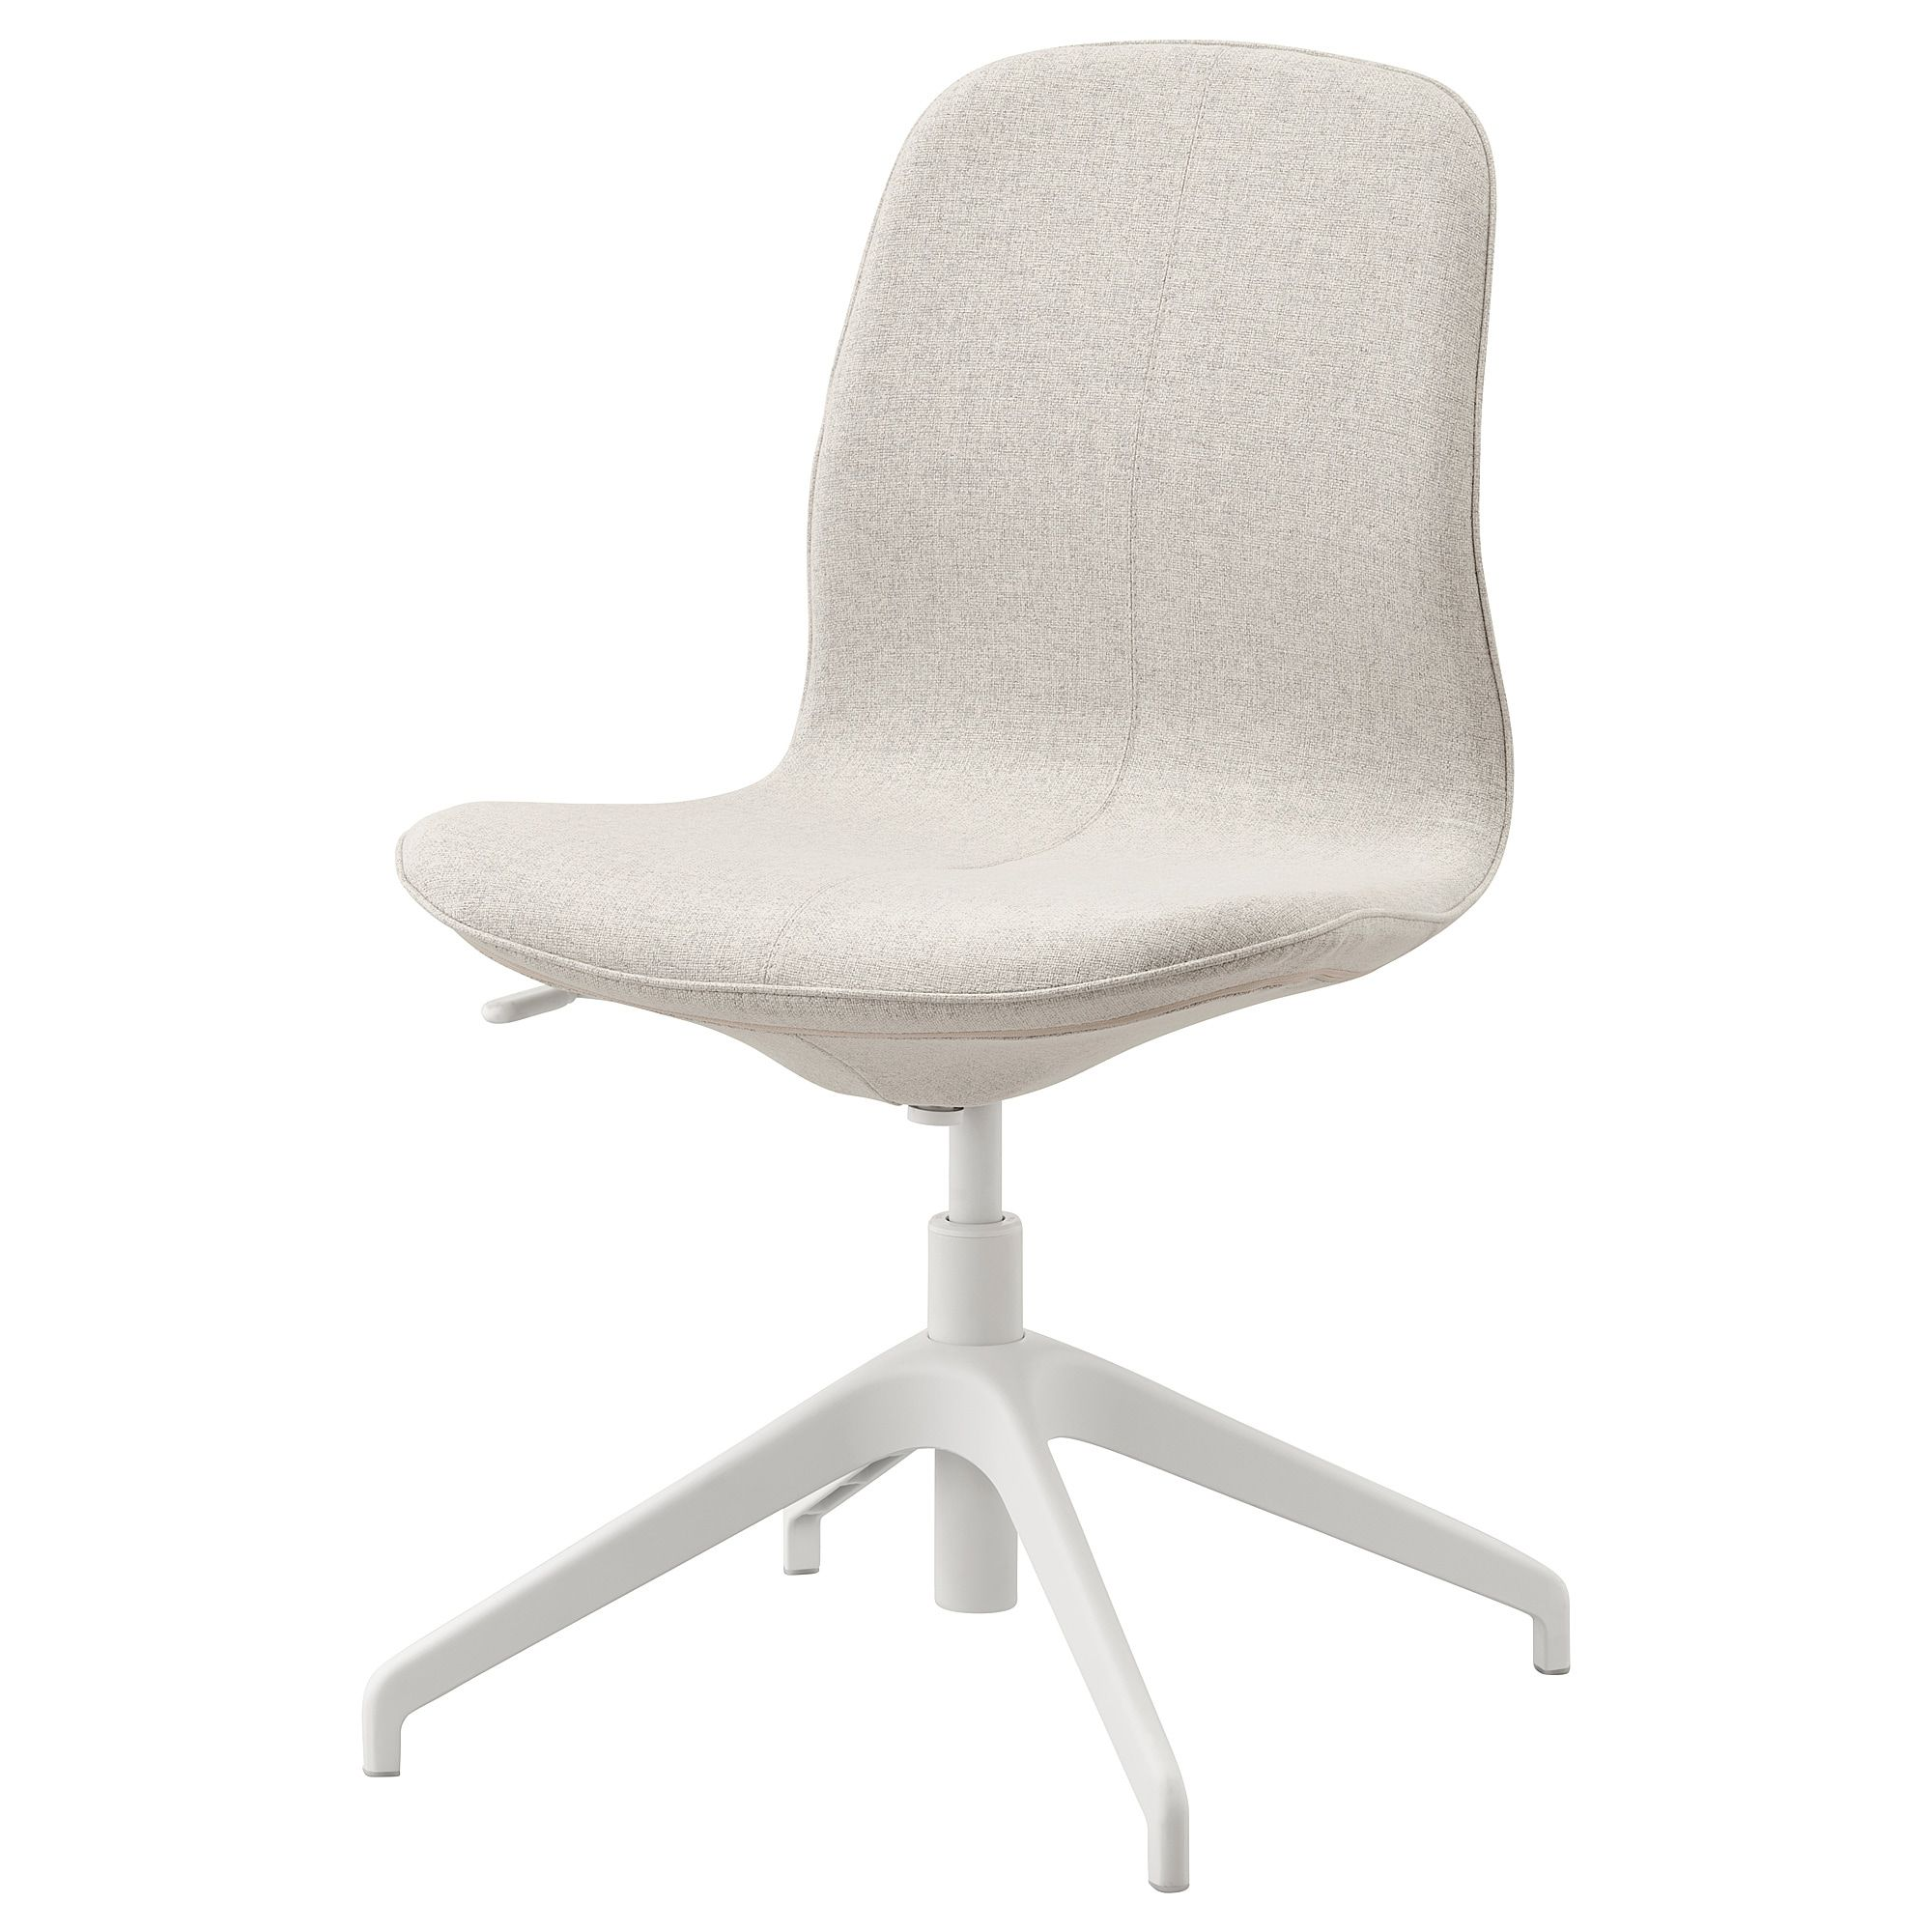 IKEA LANGFJALL Gunnared Beige, White Conference chair in